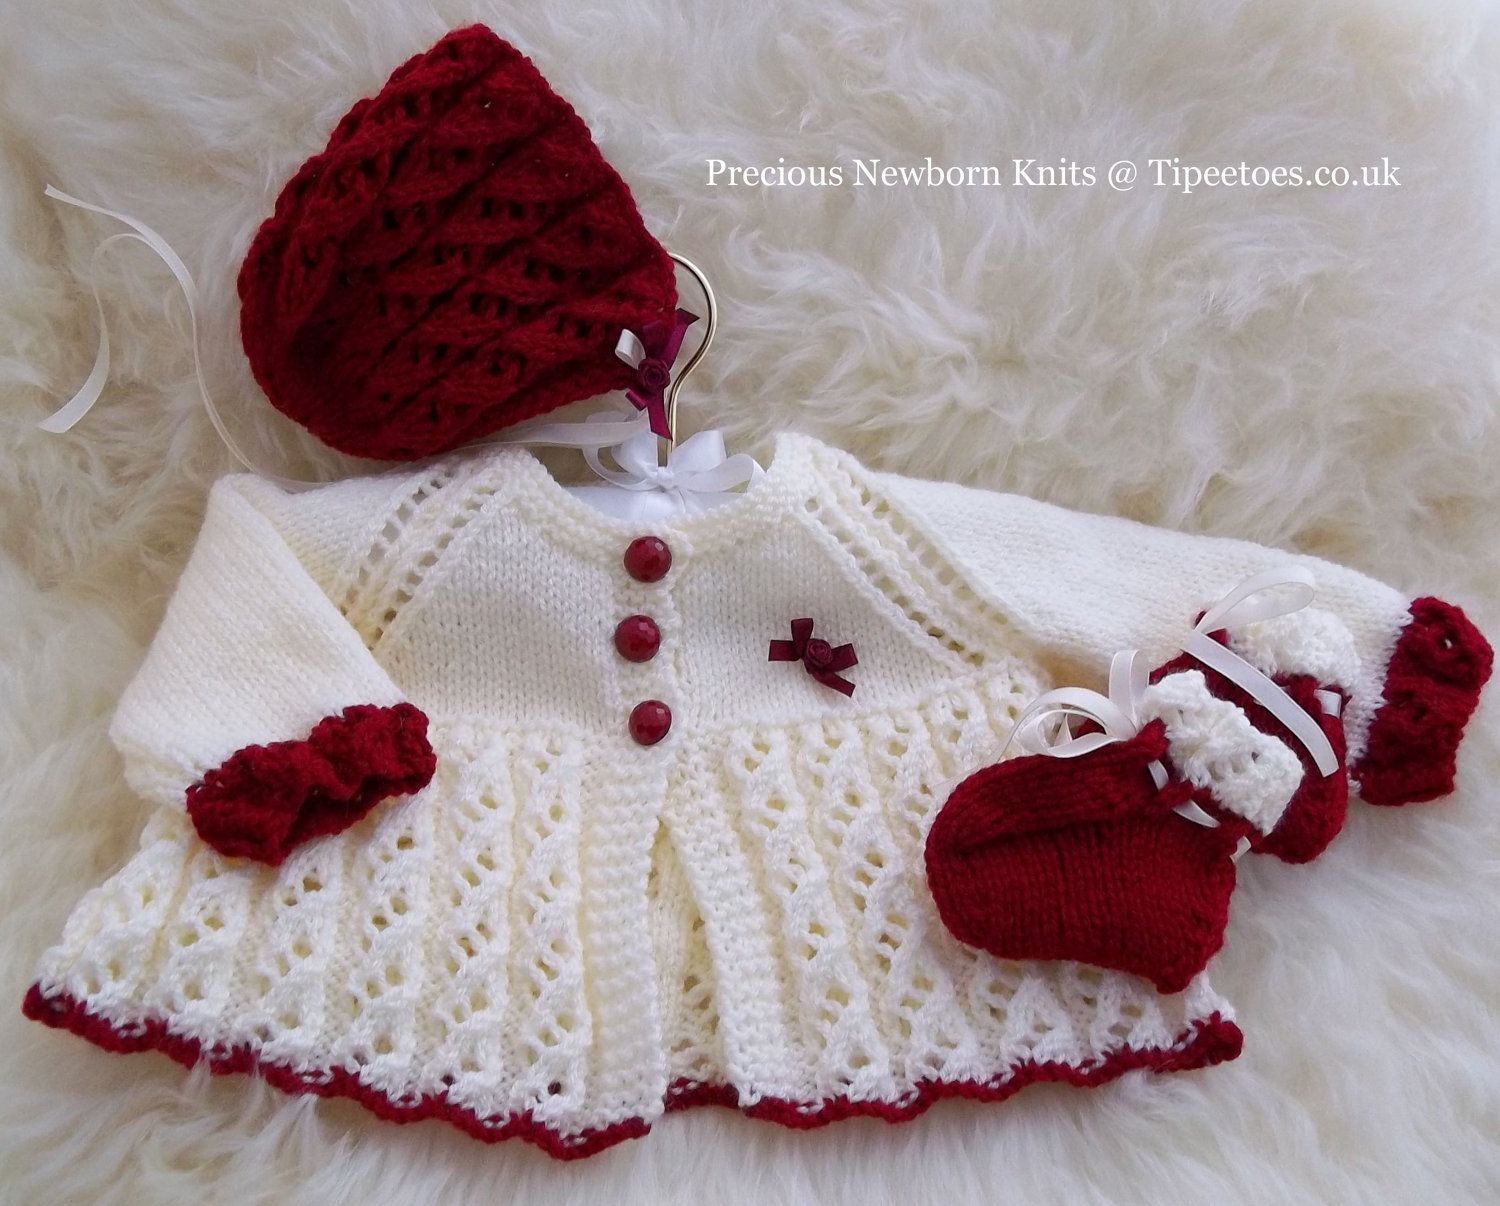 Baby Girl Knitted Sweater Pattern : Baby Knitting Pattern - Baby Girls or Reborn Dolls Sweater Set - Download PDF...